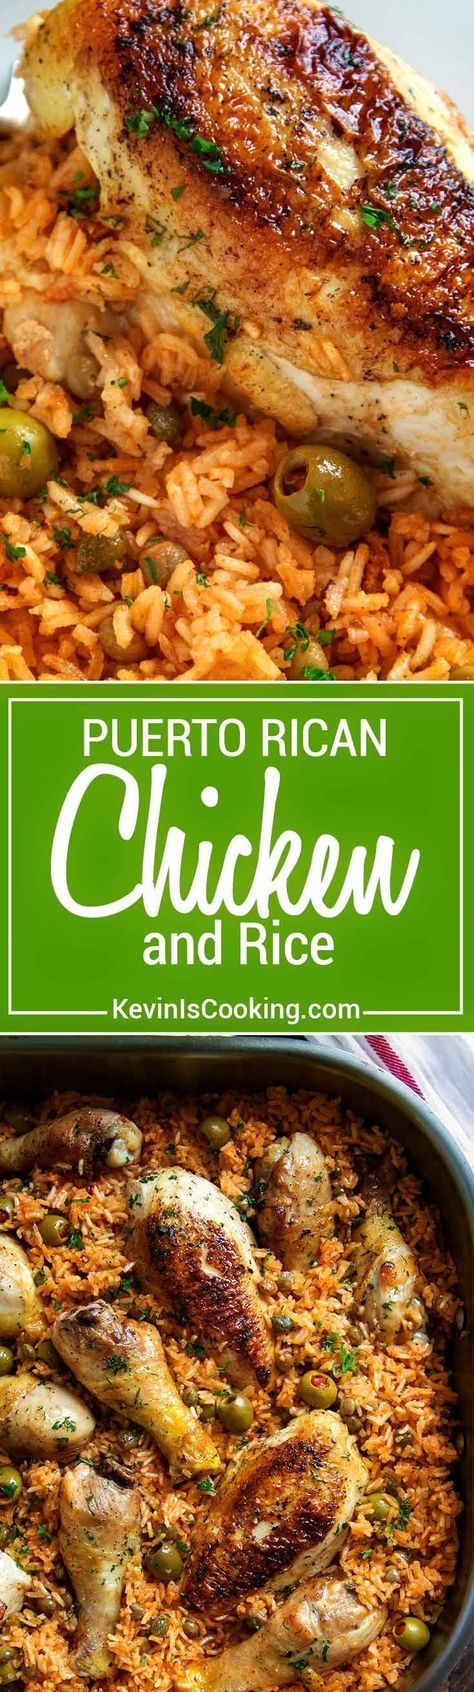 Puerto Rican Chicken and Rice is a Latin classic and packed with flavor, not heat. Browned chicken simmers in rice, flavorful sofrito, olives and capers. via /keviniscooking/